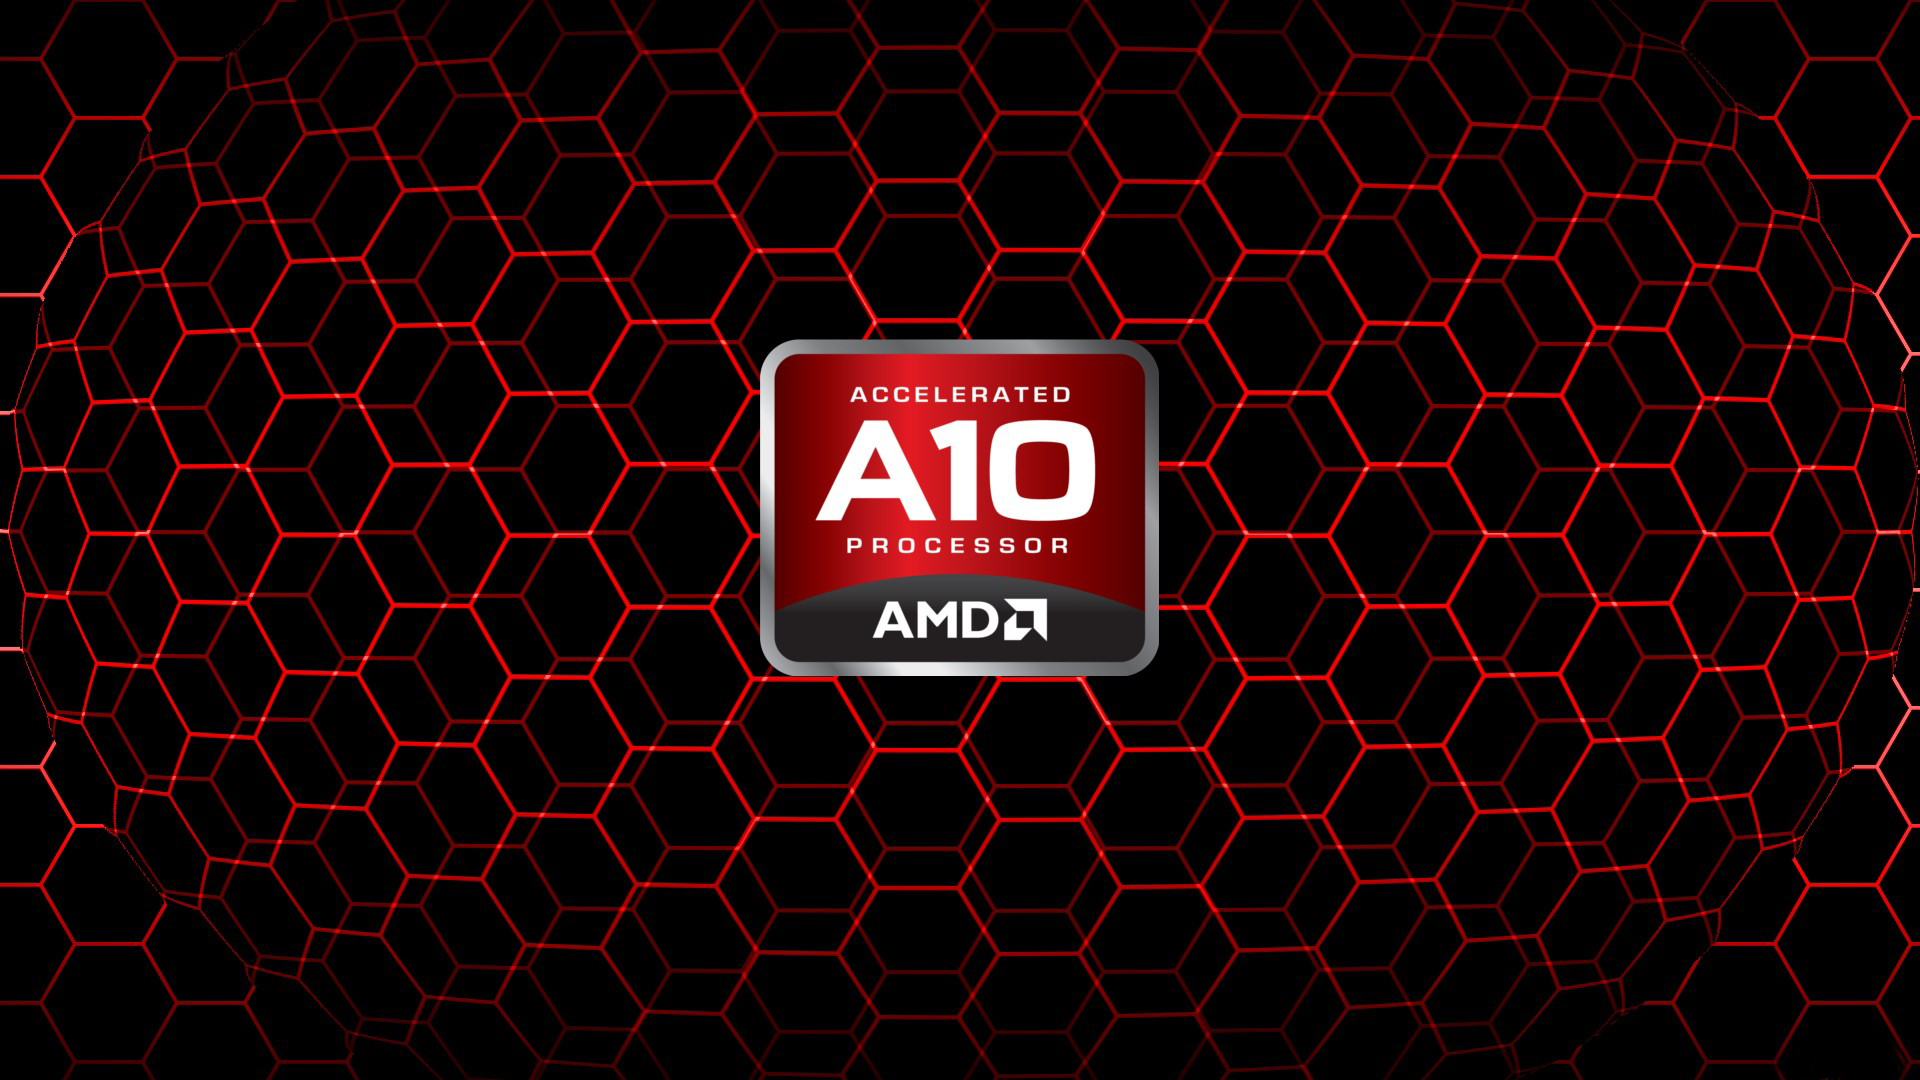 45+] Amd Wallpaper 1920X1080 on WallpaperSafari